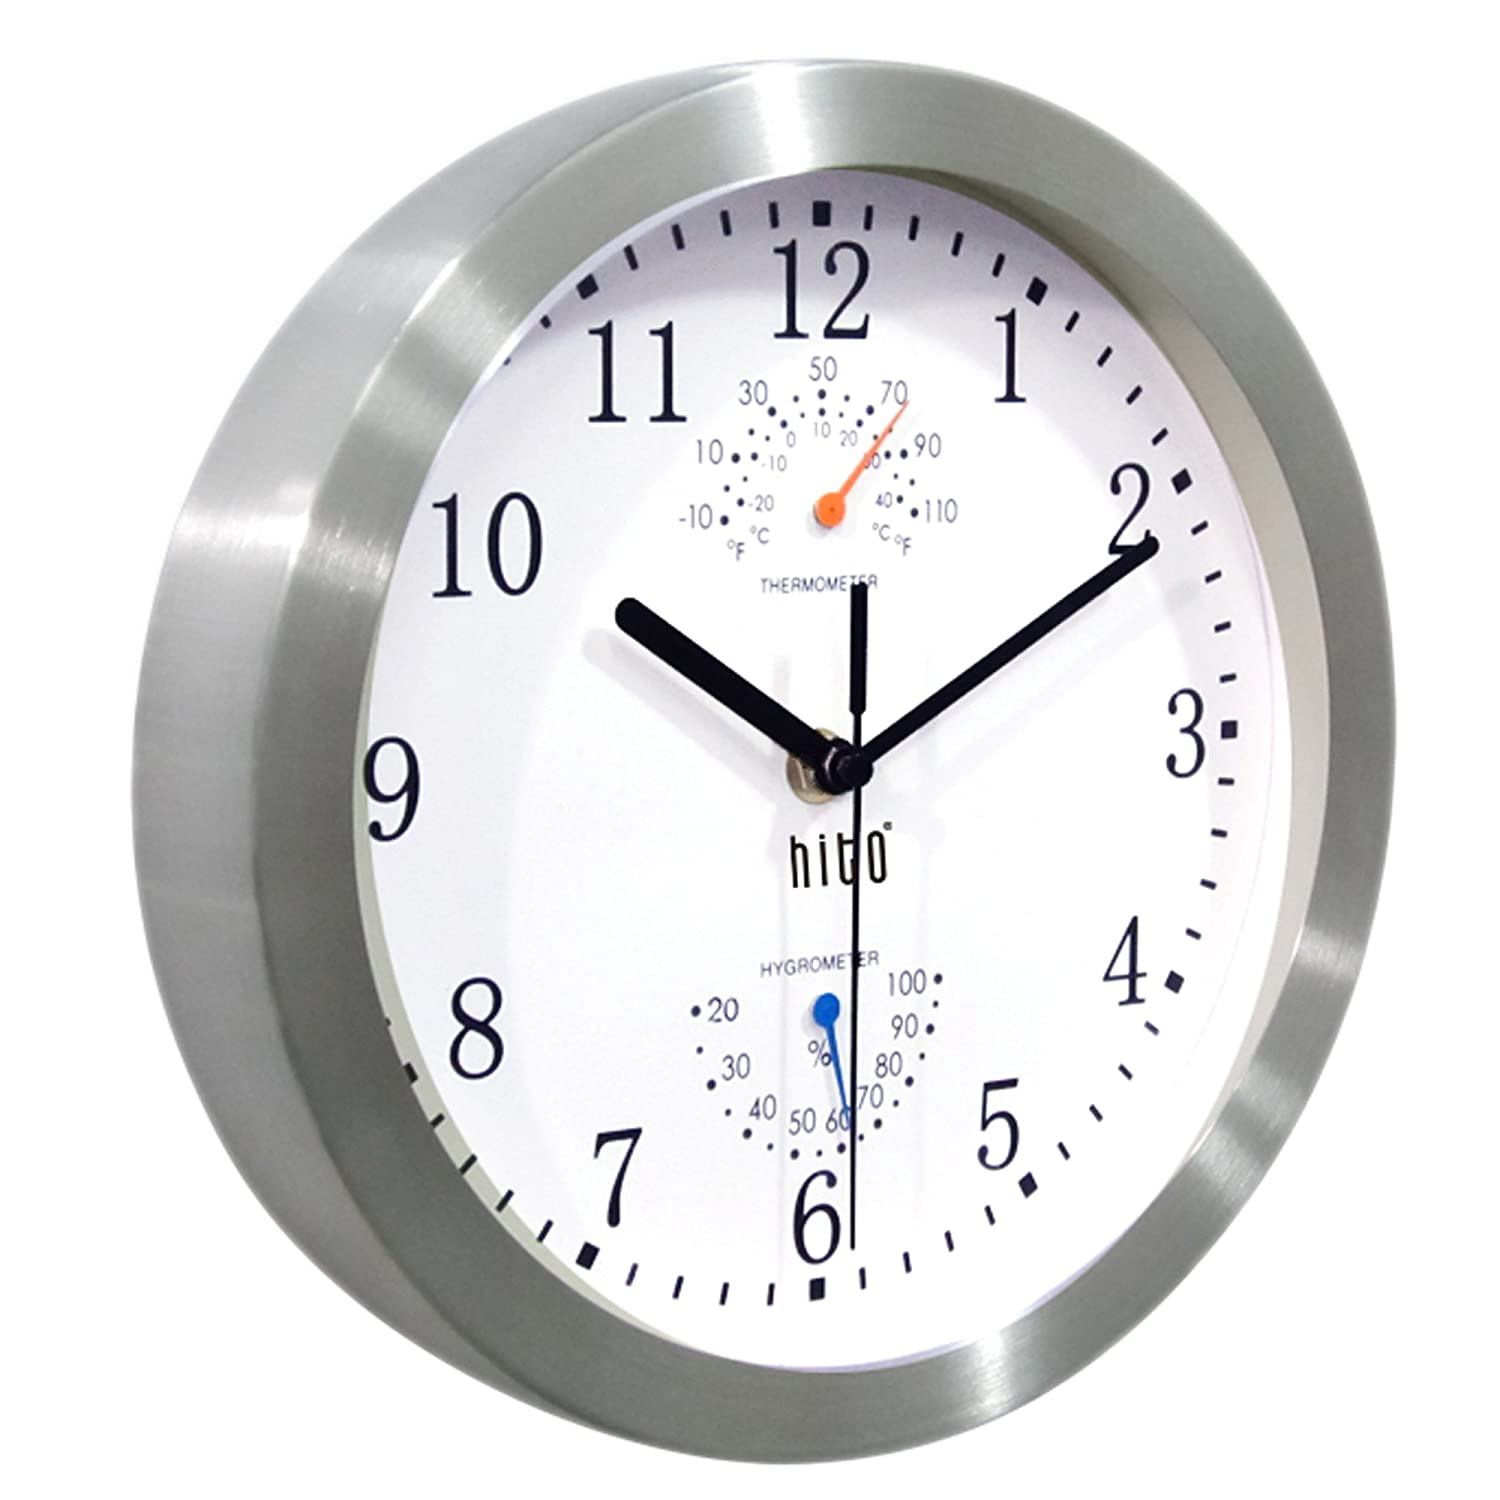 Decorative for Kitchen Black Bedroom HITO Modern Silent Wall Clock Non Ticking 10 inch Excellent Accurate Sweep Movement Silver Aluminum Frame Glass Cover Office Bedroom Bathroom Living Room